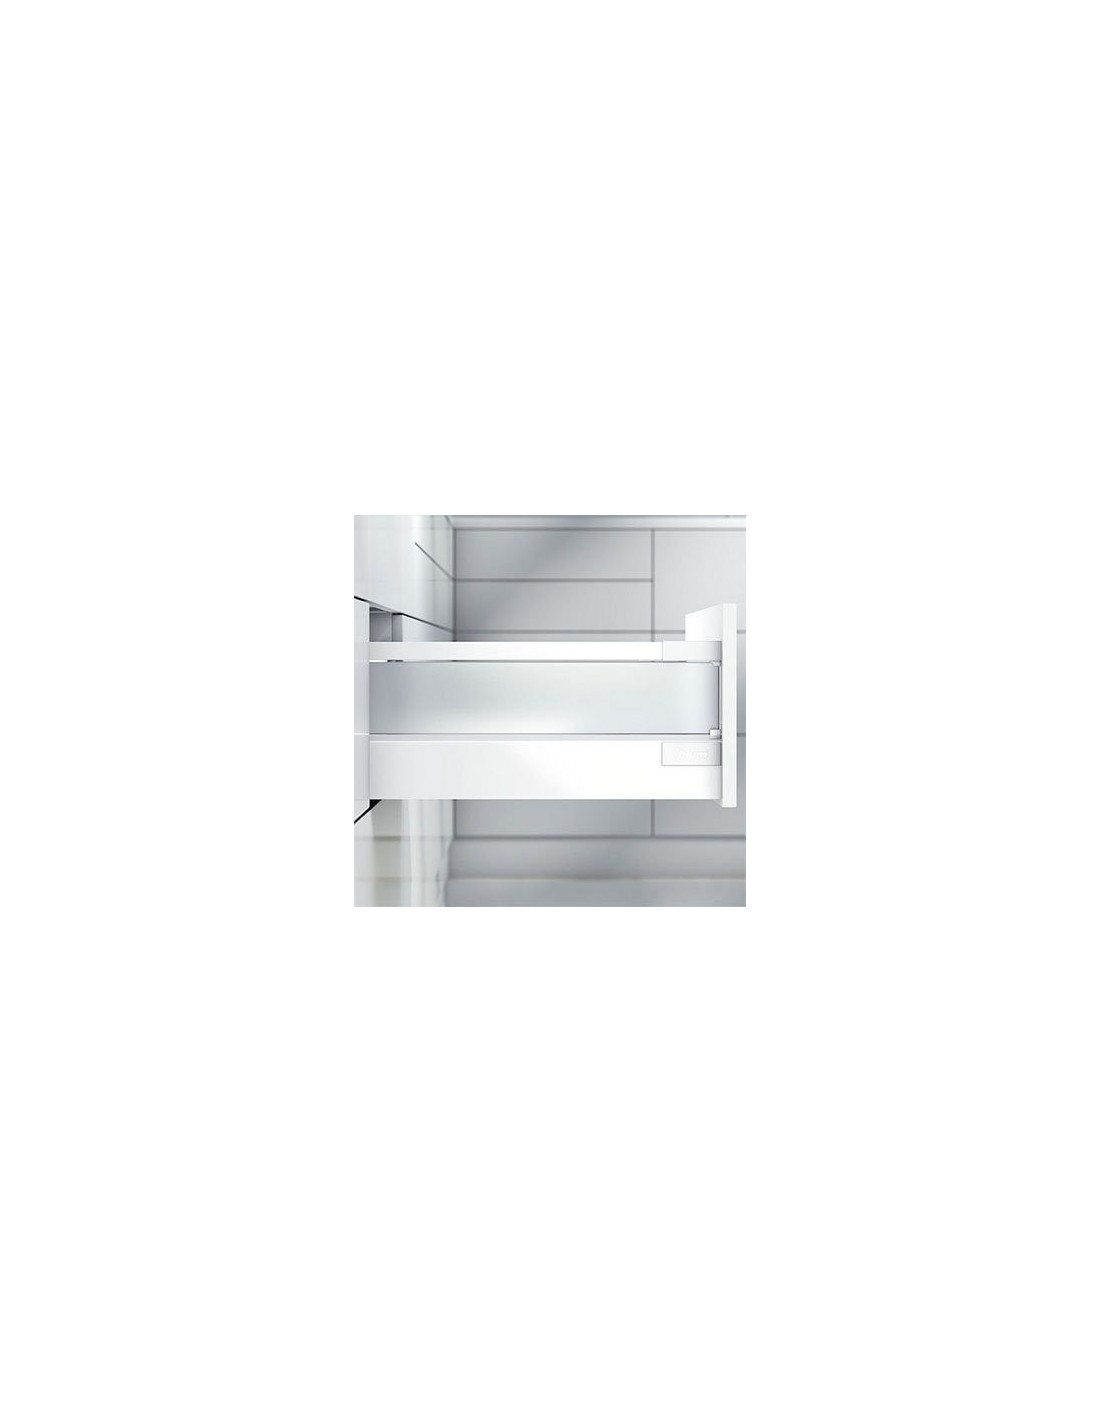 cabinet drawer blum glass design element for antaro kitchen drawers 12838